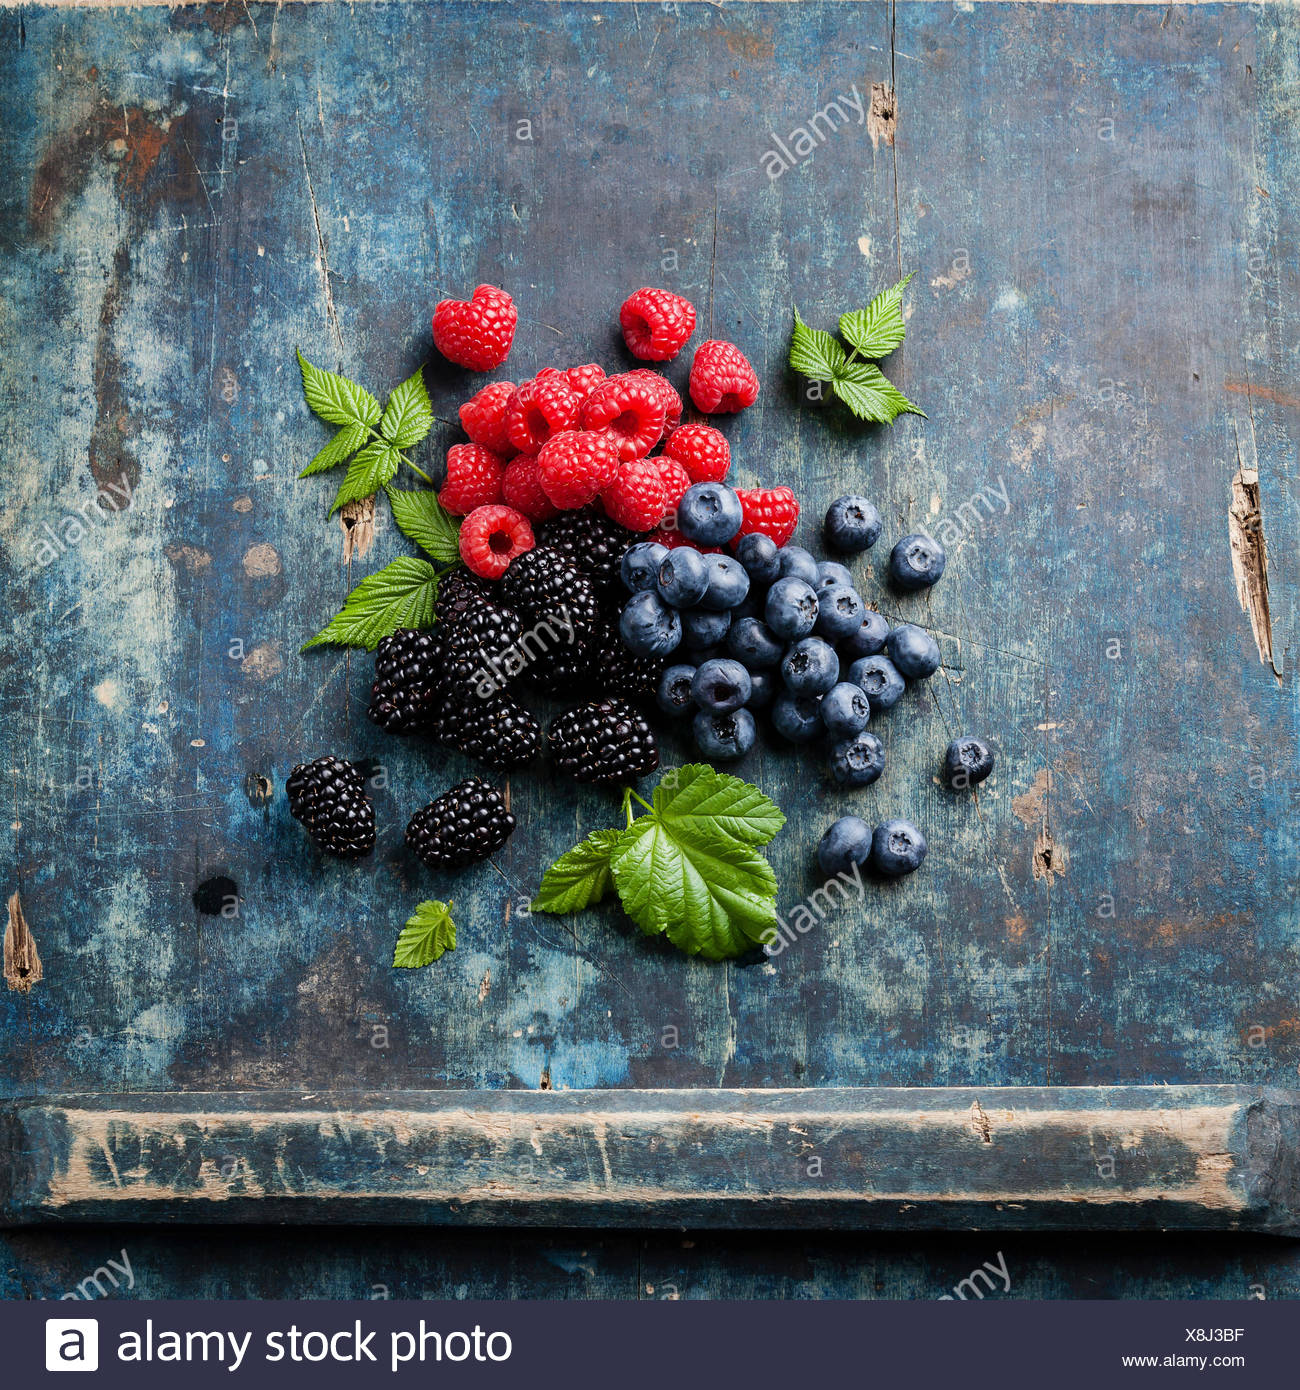 Mix of fresh berries with leaves on blue wooden background - Stock Image